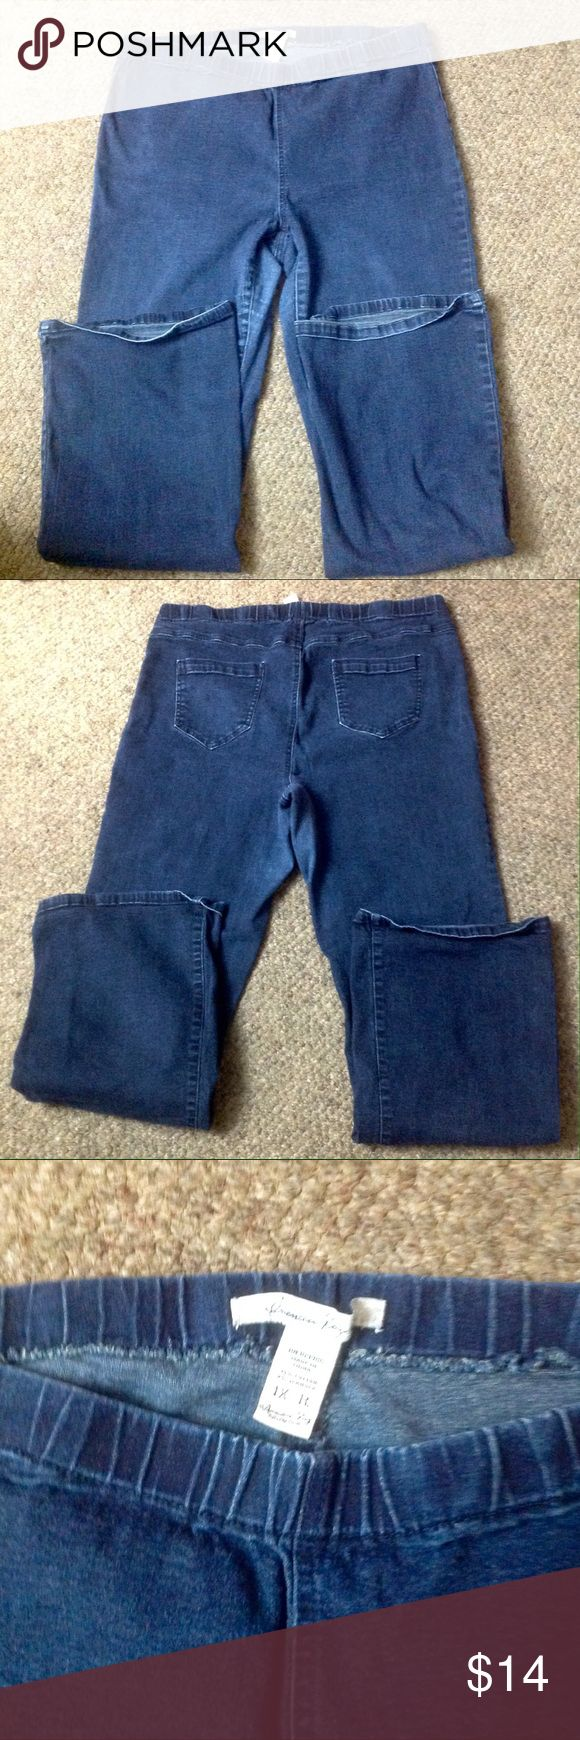 American Rag jeggings Good used condition Elastic waist Jean jeggings. Some wear in crotch area. Size 1x American Rag Jeans